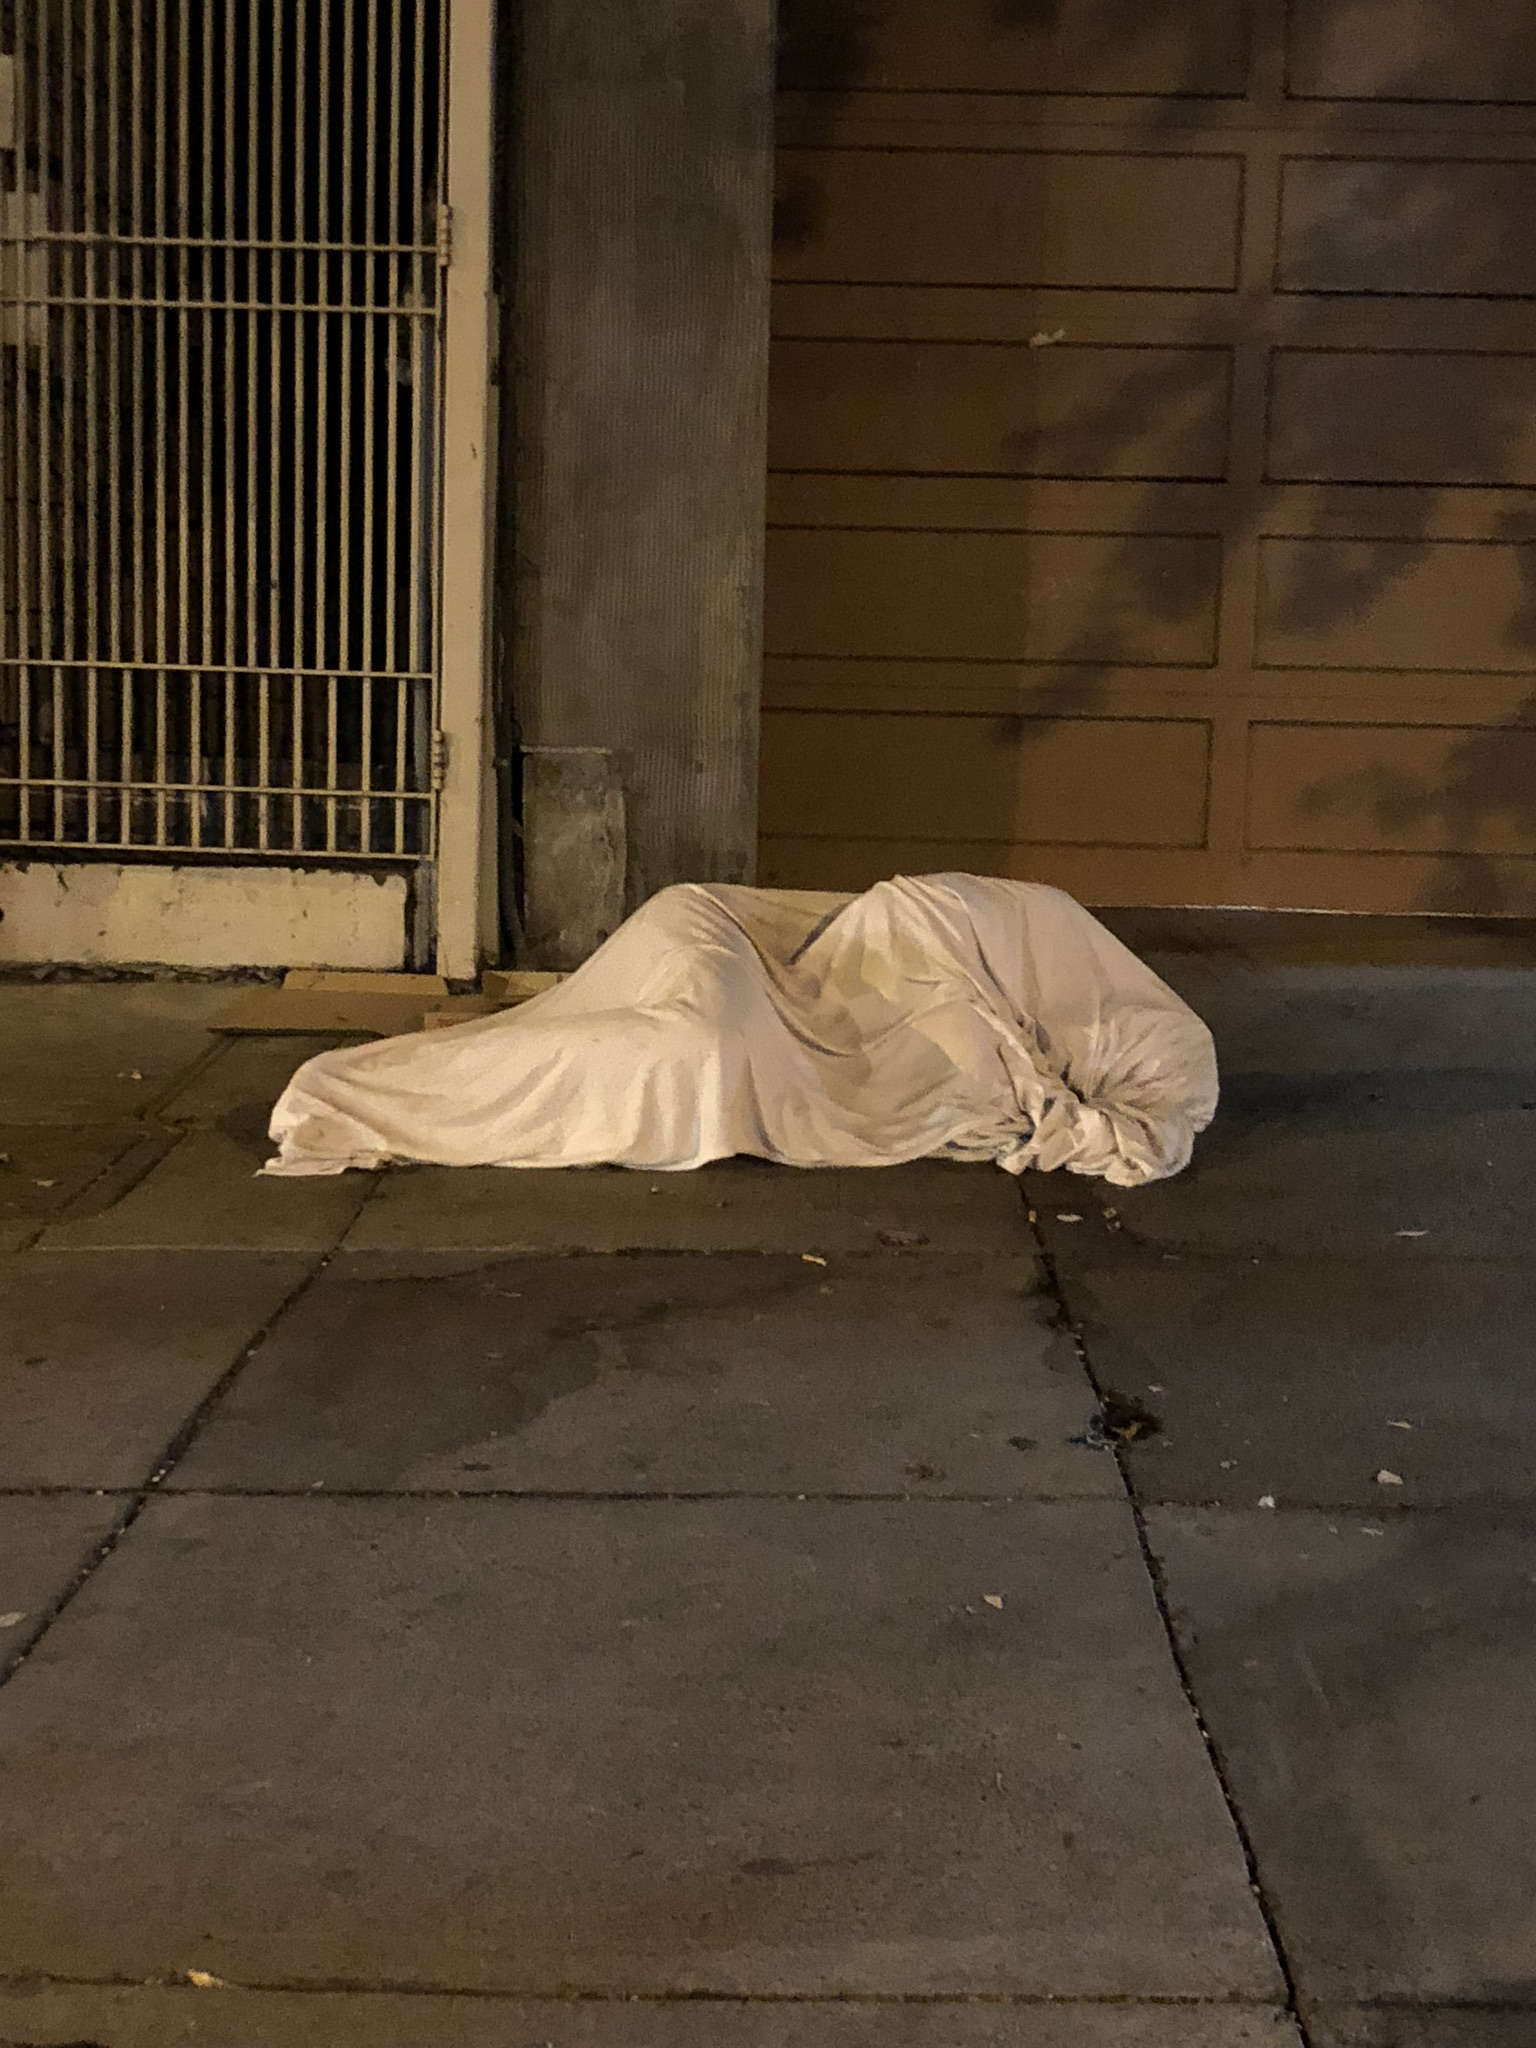 homeless person sleeping in fetal position on cold sidewalk fully wrapped in white sheet